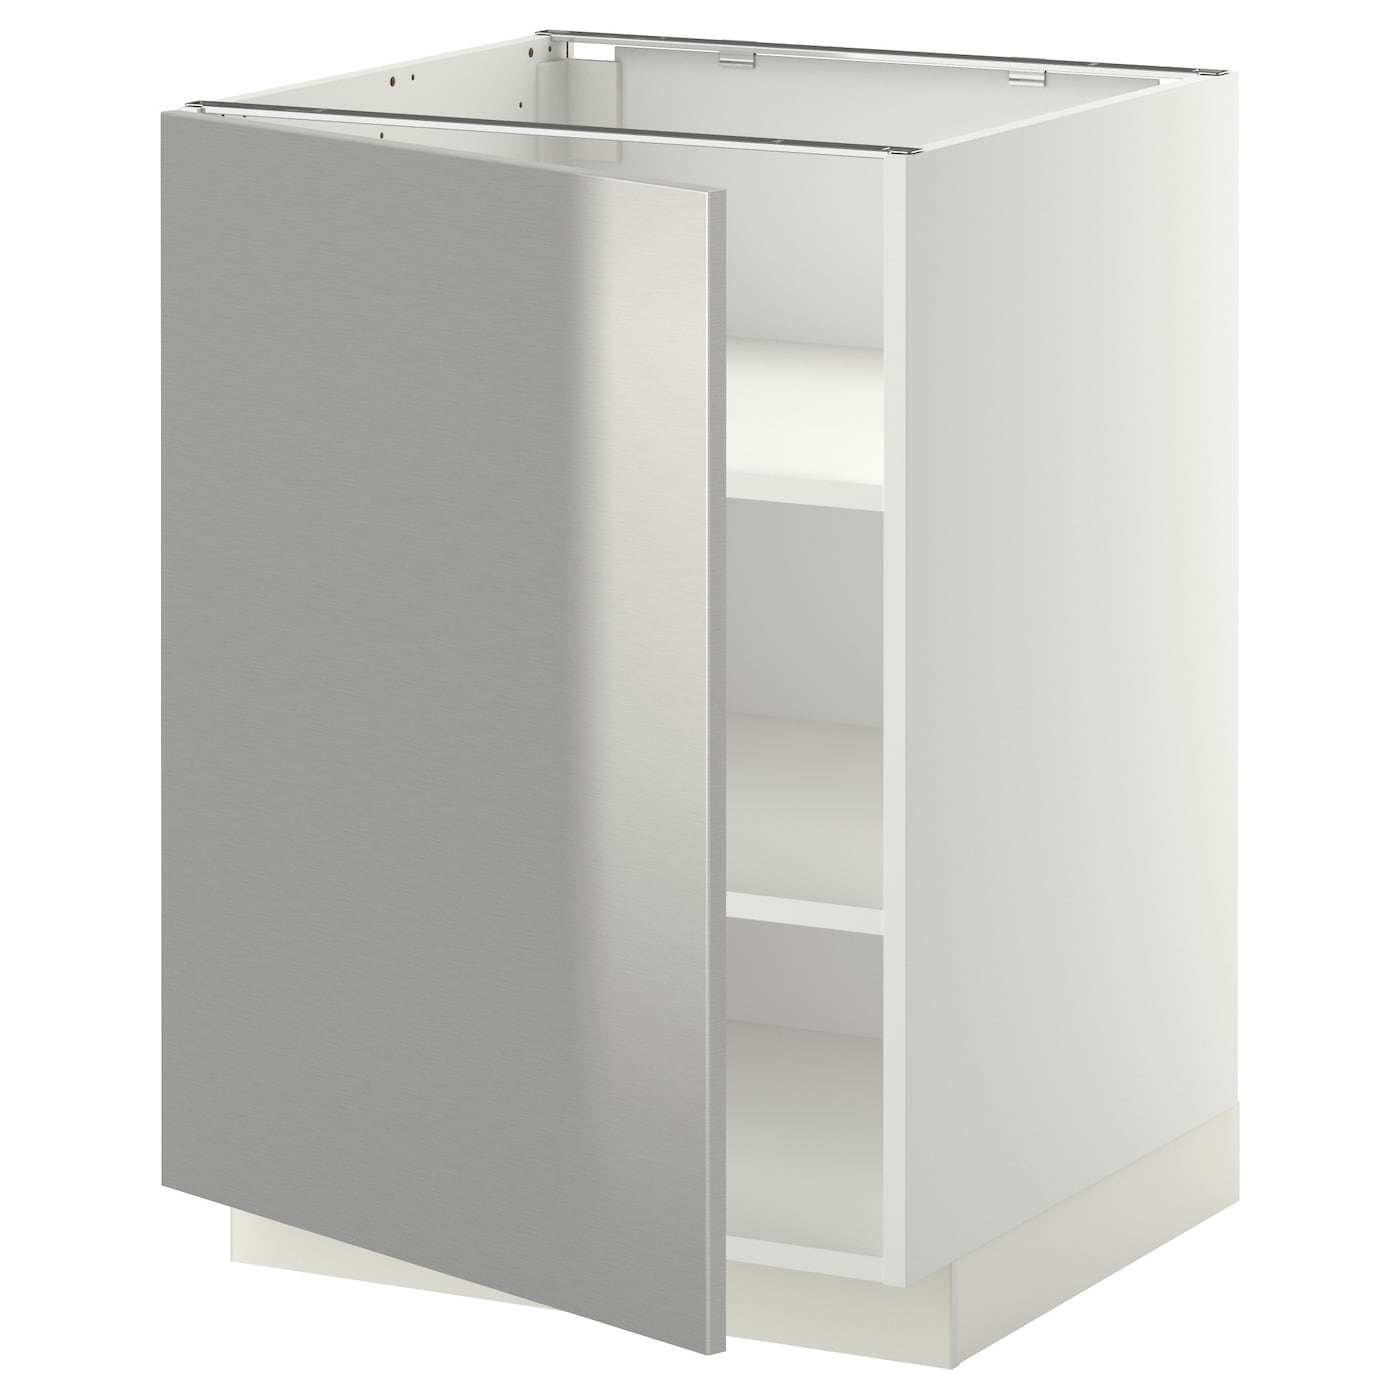 Stainless Steel Kitchen Base Cabinets: METOD Base Cabinet With Shelves White/grevsta Stainless